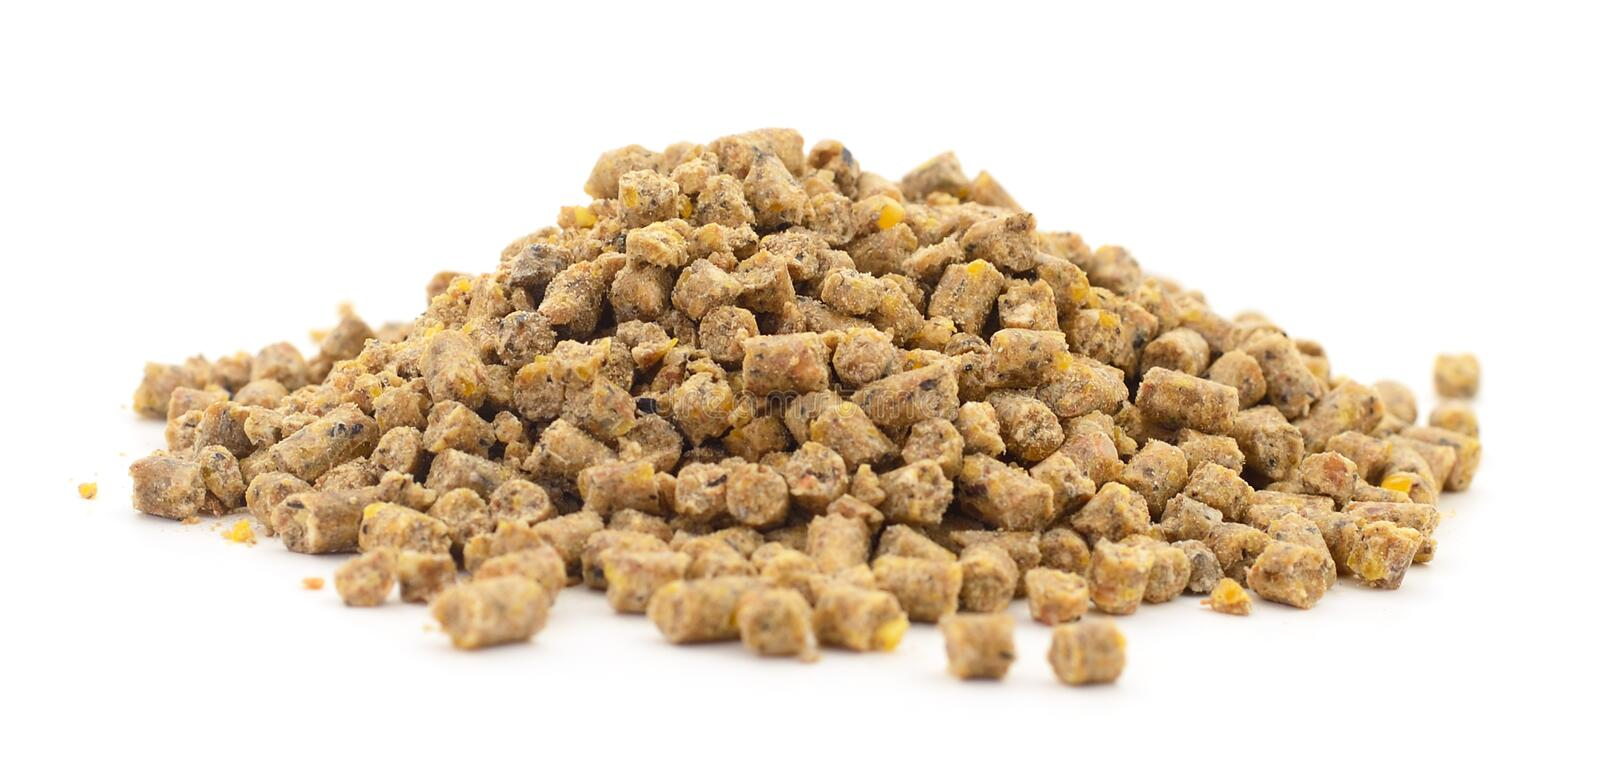 Animal feed for chicken. Closeup on white background stock photo